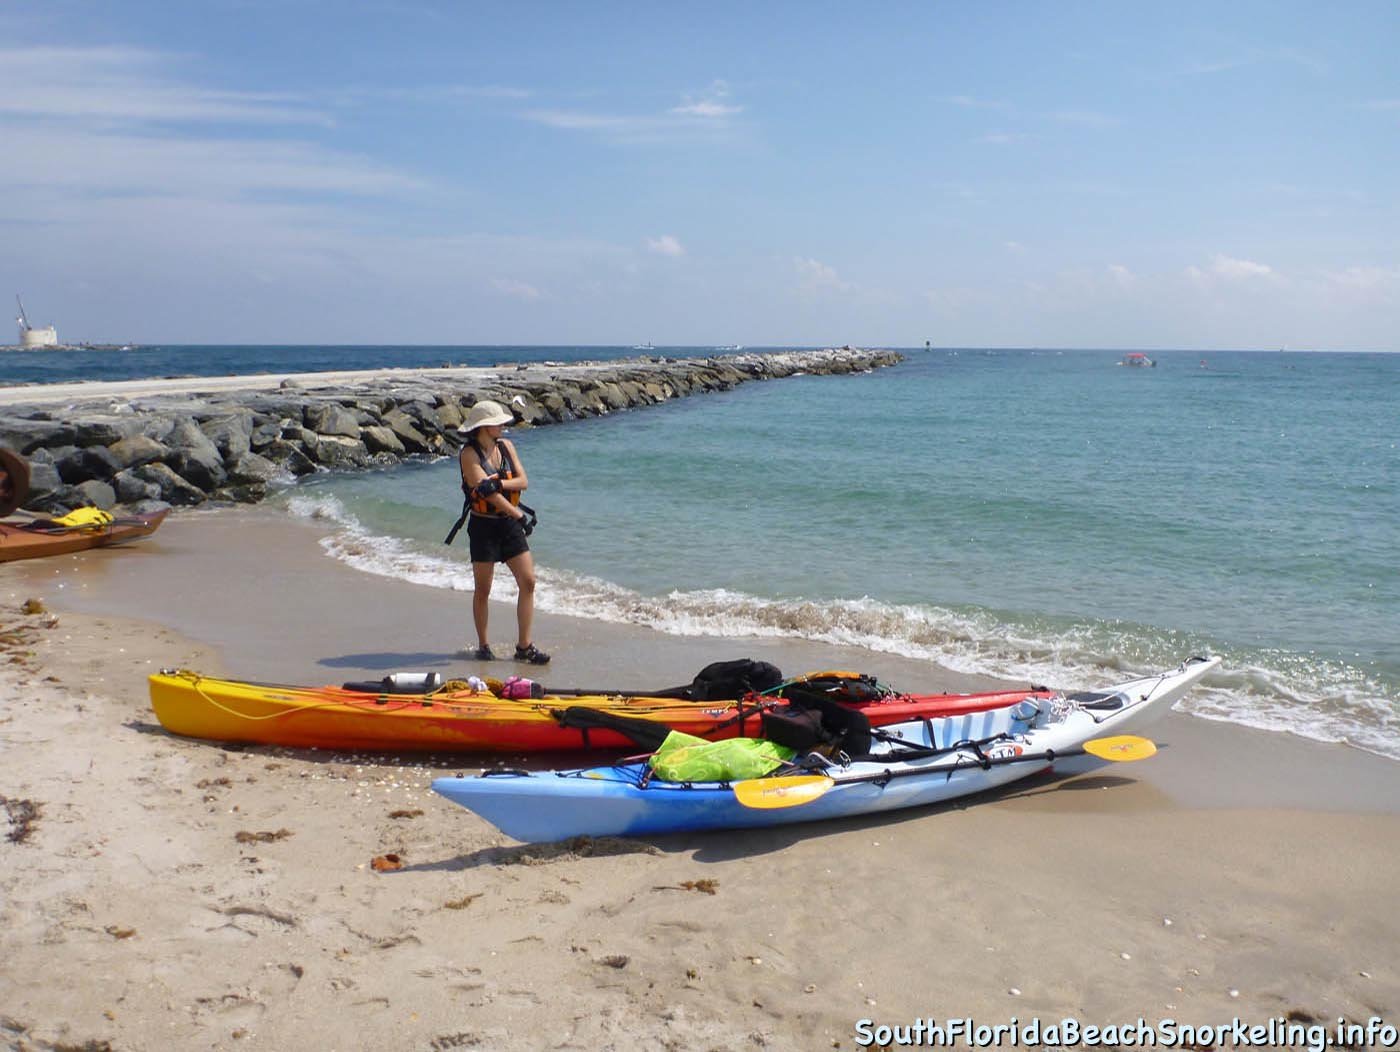 South_Side_Jetty_of_Port_of_Palm_Beach-southfloridabeachsnorkeling.info-01.jpg